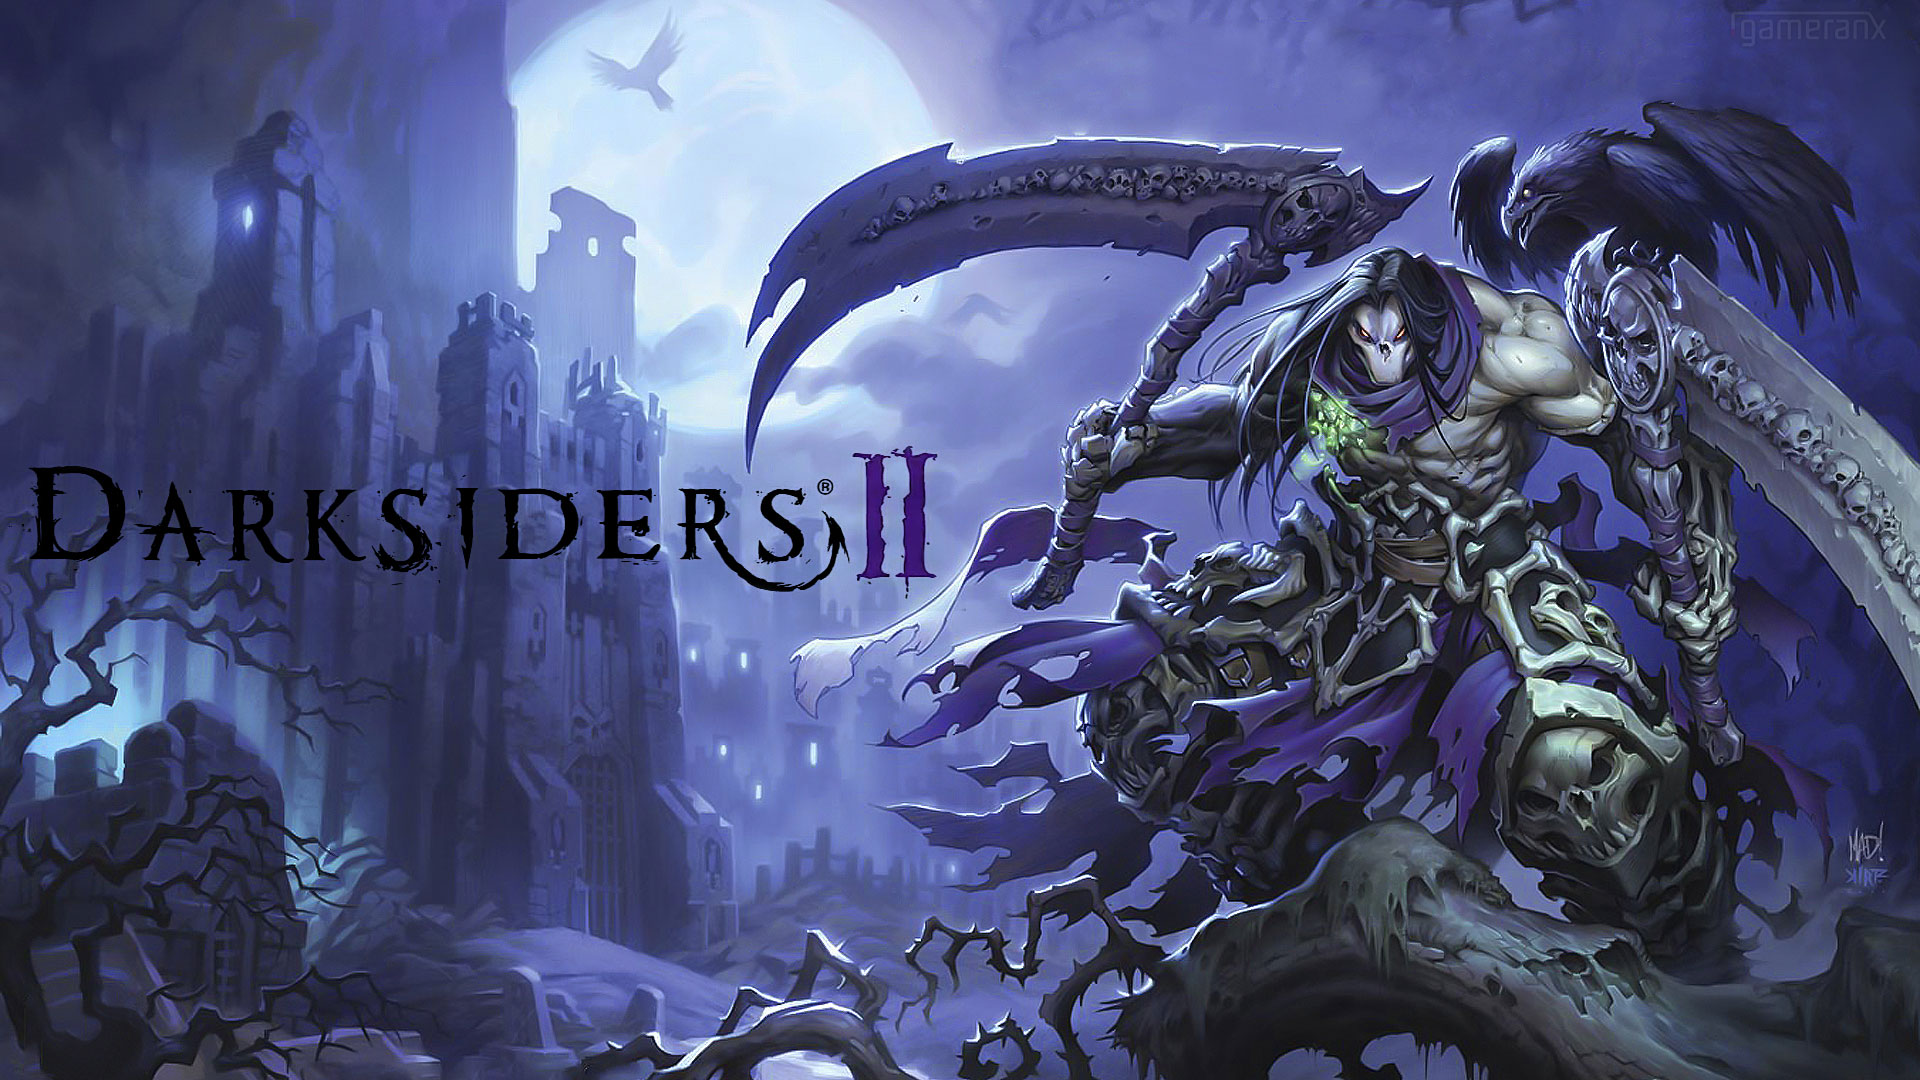 Darksiders 2 Wallpaper Hd 120434 1920x1080